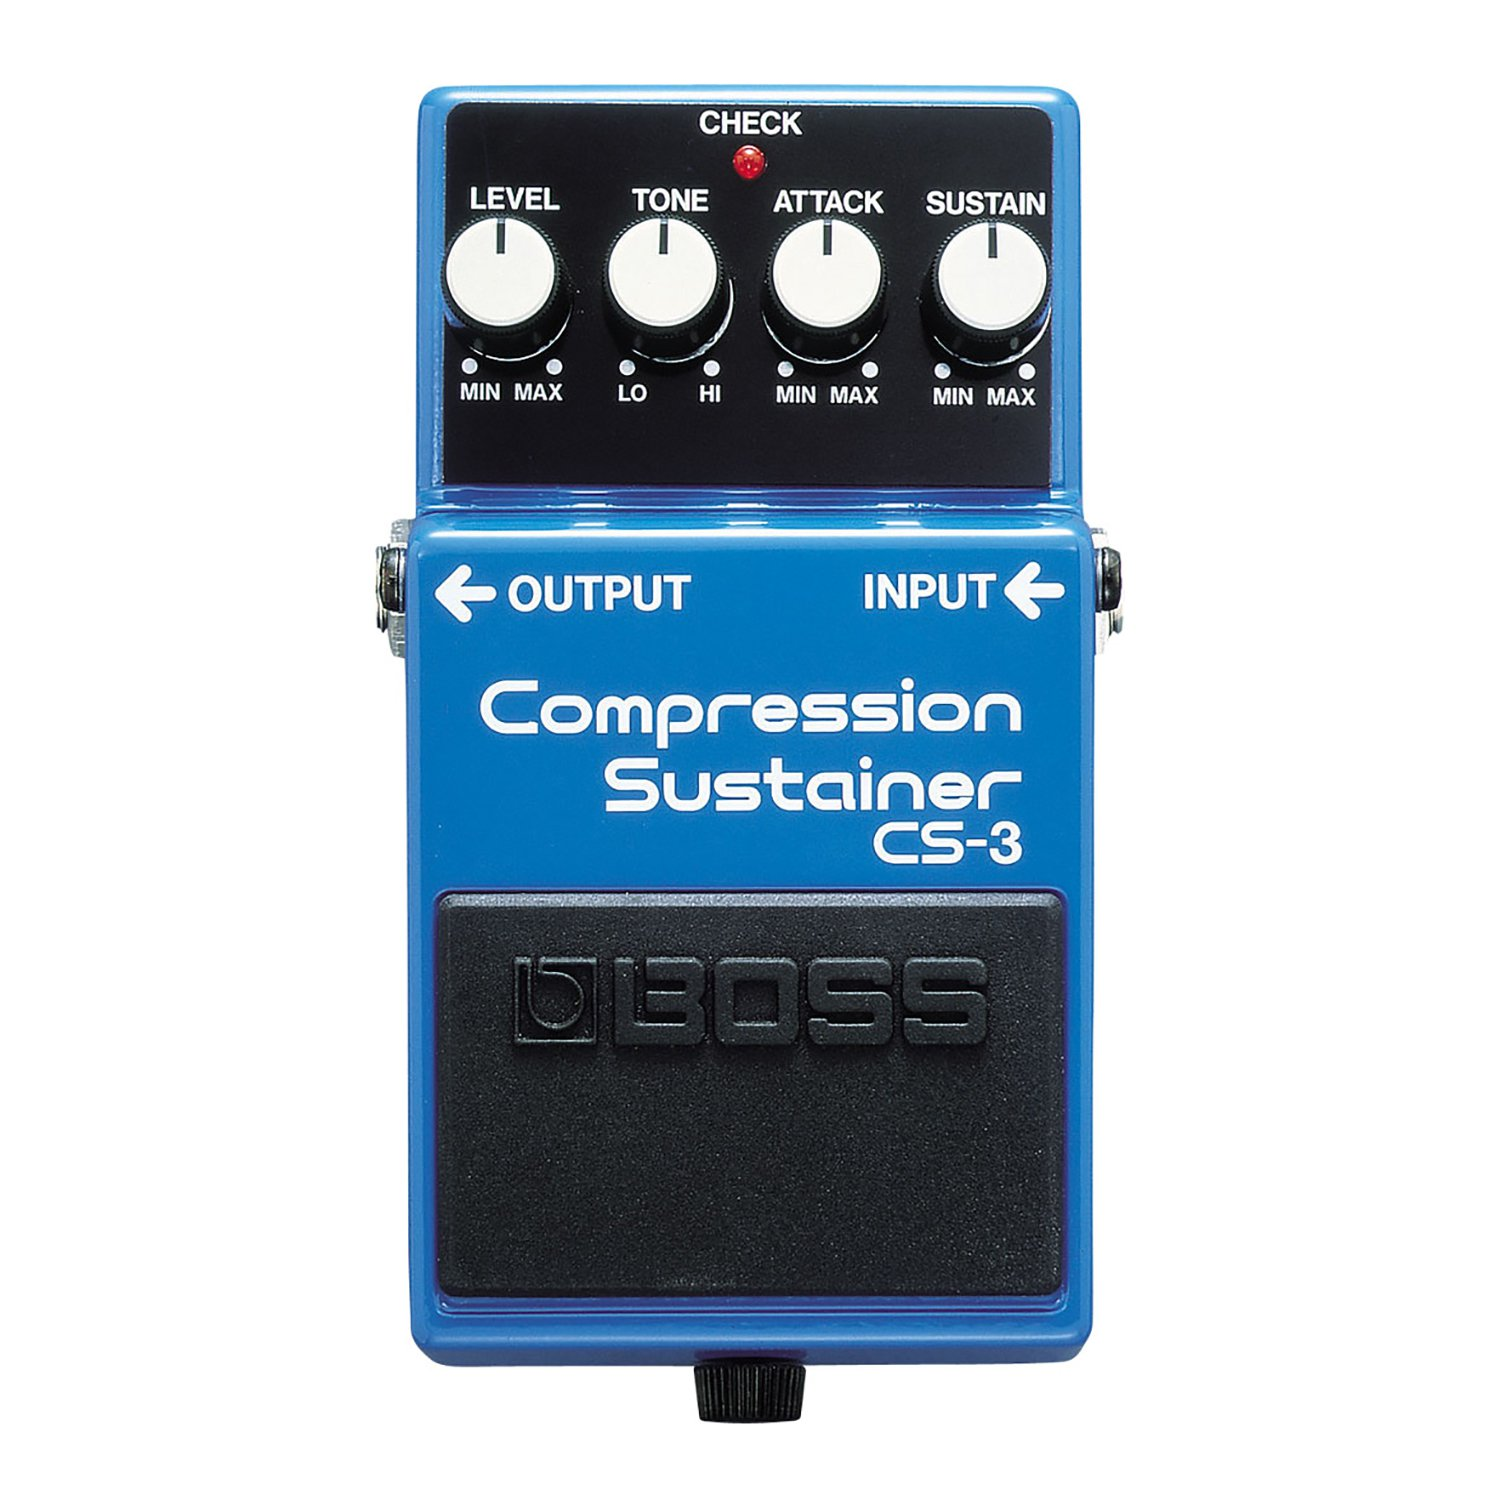 Boss CS-3 Compression Sustainer Tone Pedal Effect for Guitarists and Bassists